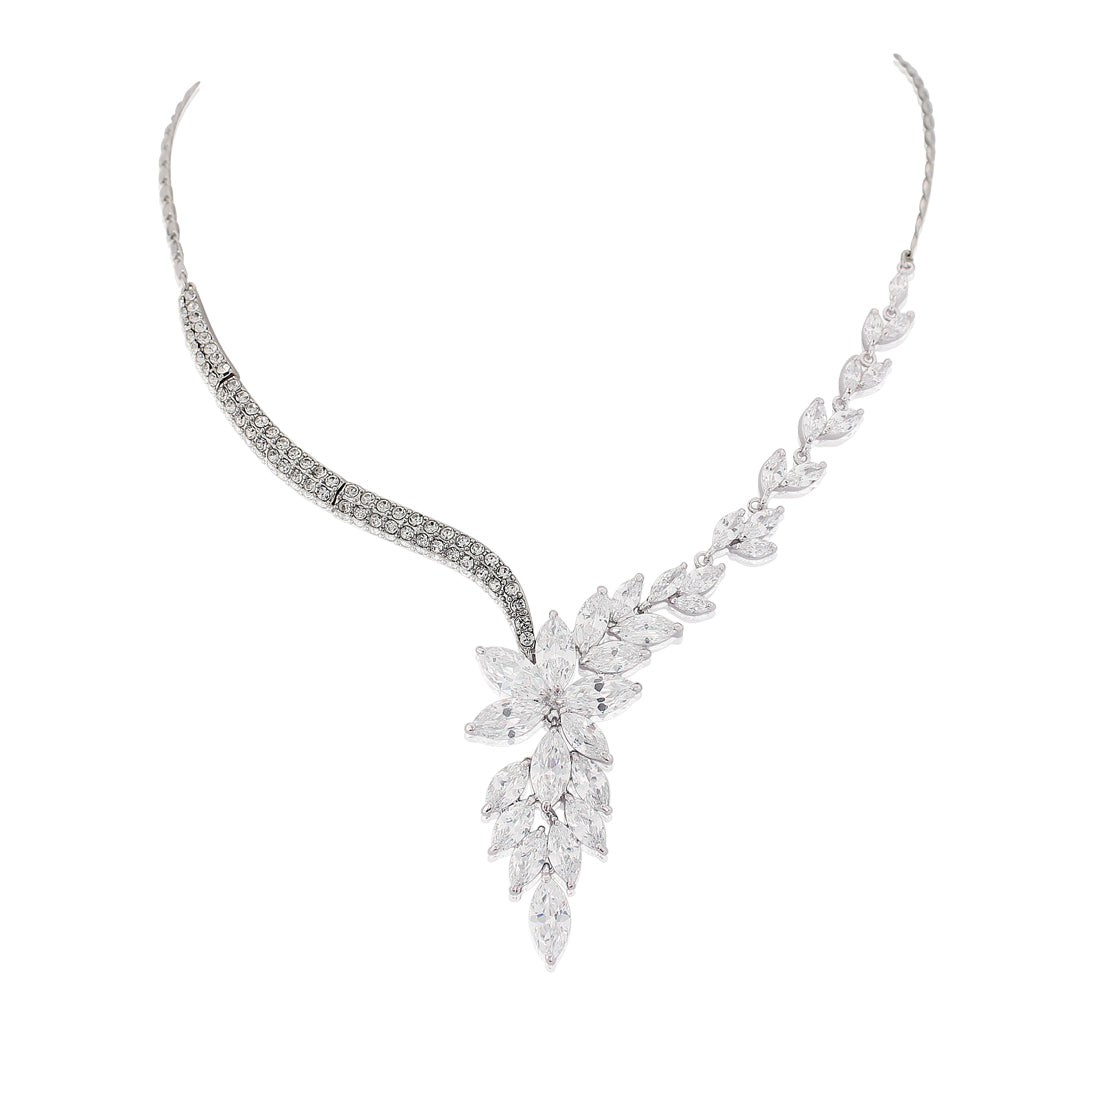 Cascades of Crystal Bridal Necklace